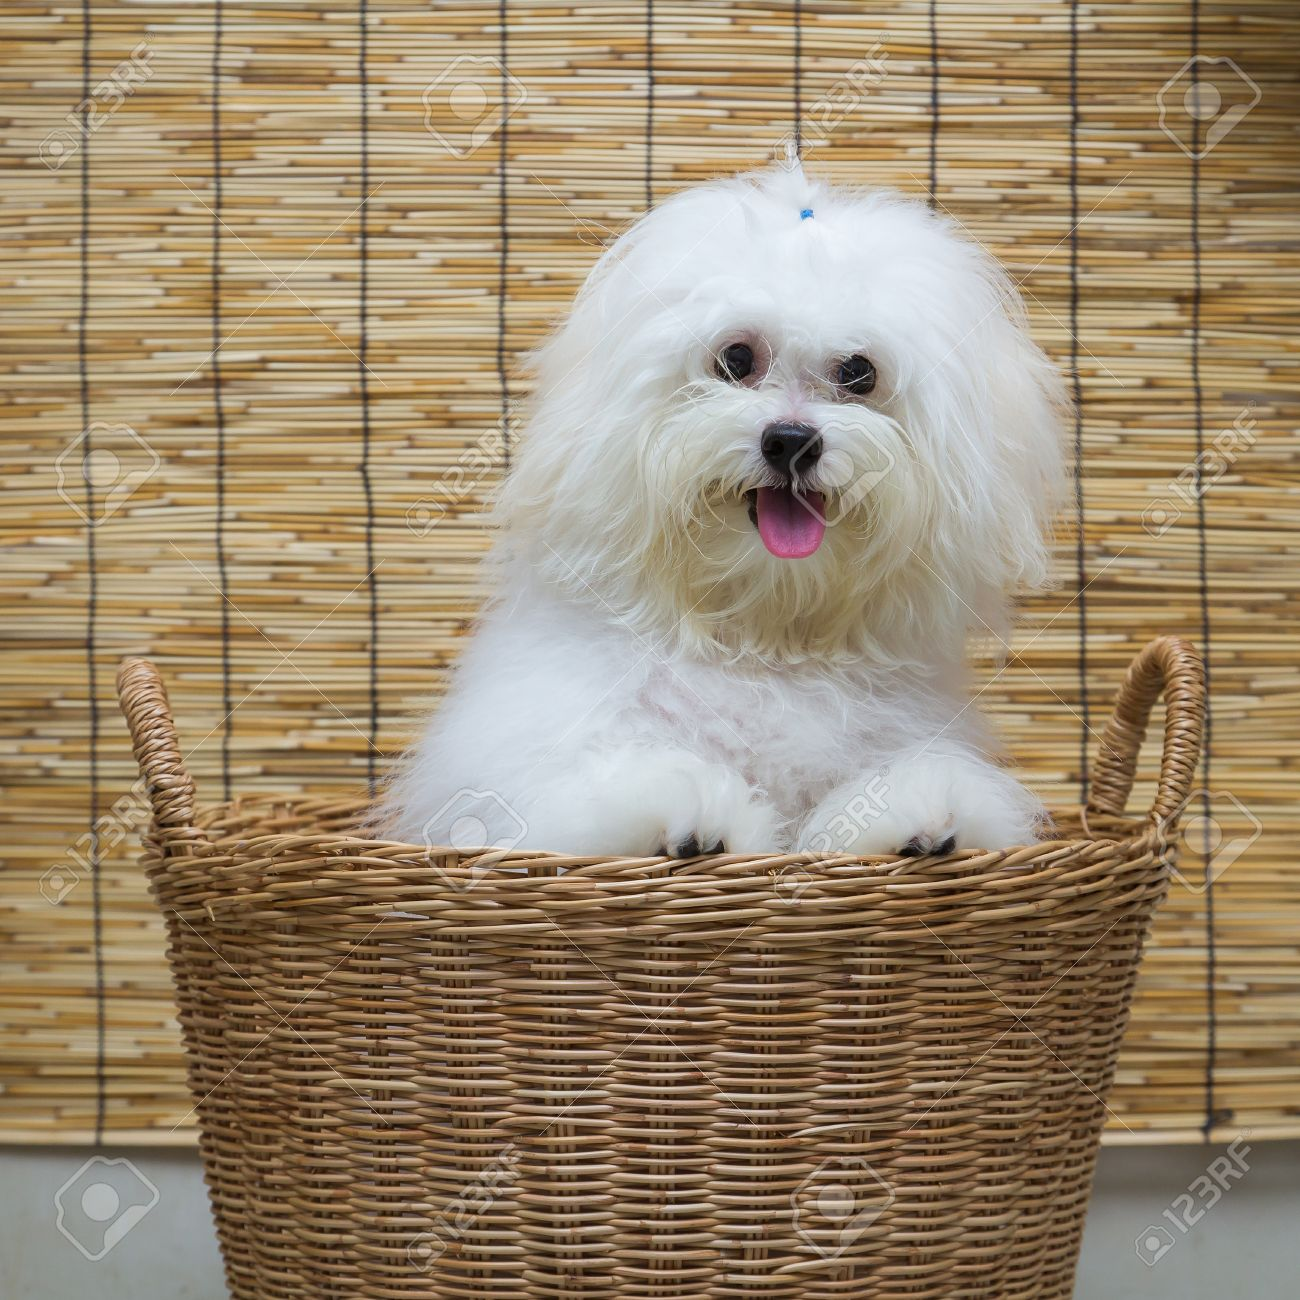 Shih Tzu Puppy Breed Tiny Dog In Basket With Japan Mat Background Stock Photo Picture And Royalty Free Image Image 36279297